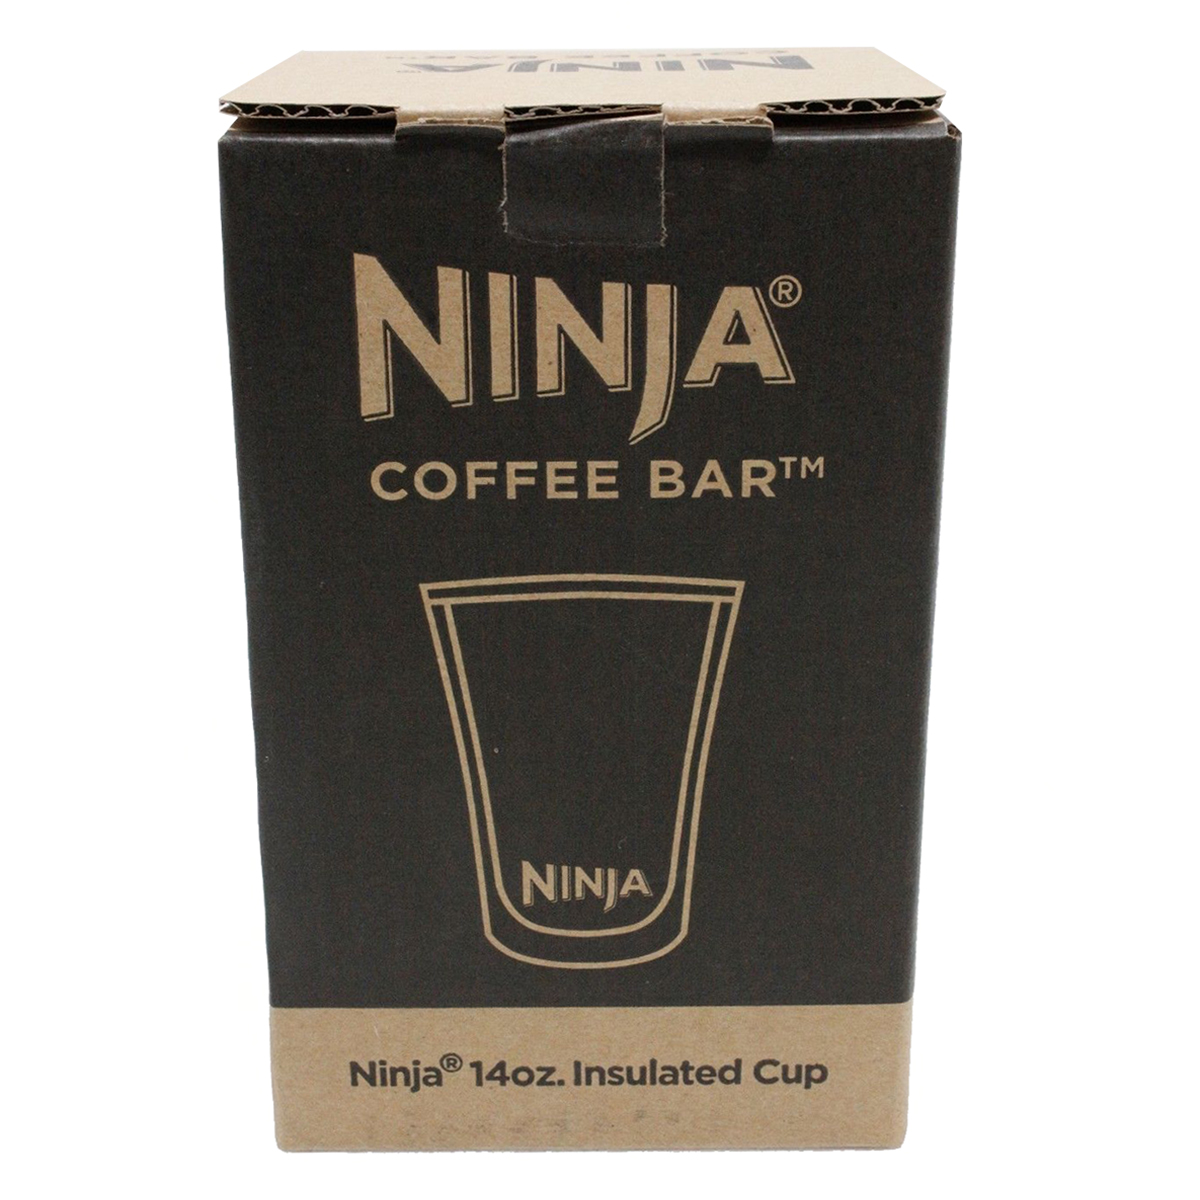 ninja 14 oz microwave safe plastic double insulated cup for coffee bar 4 pack. Black Bedroom Furniture Sets. Home Design Ideas